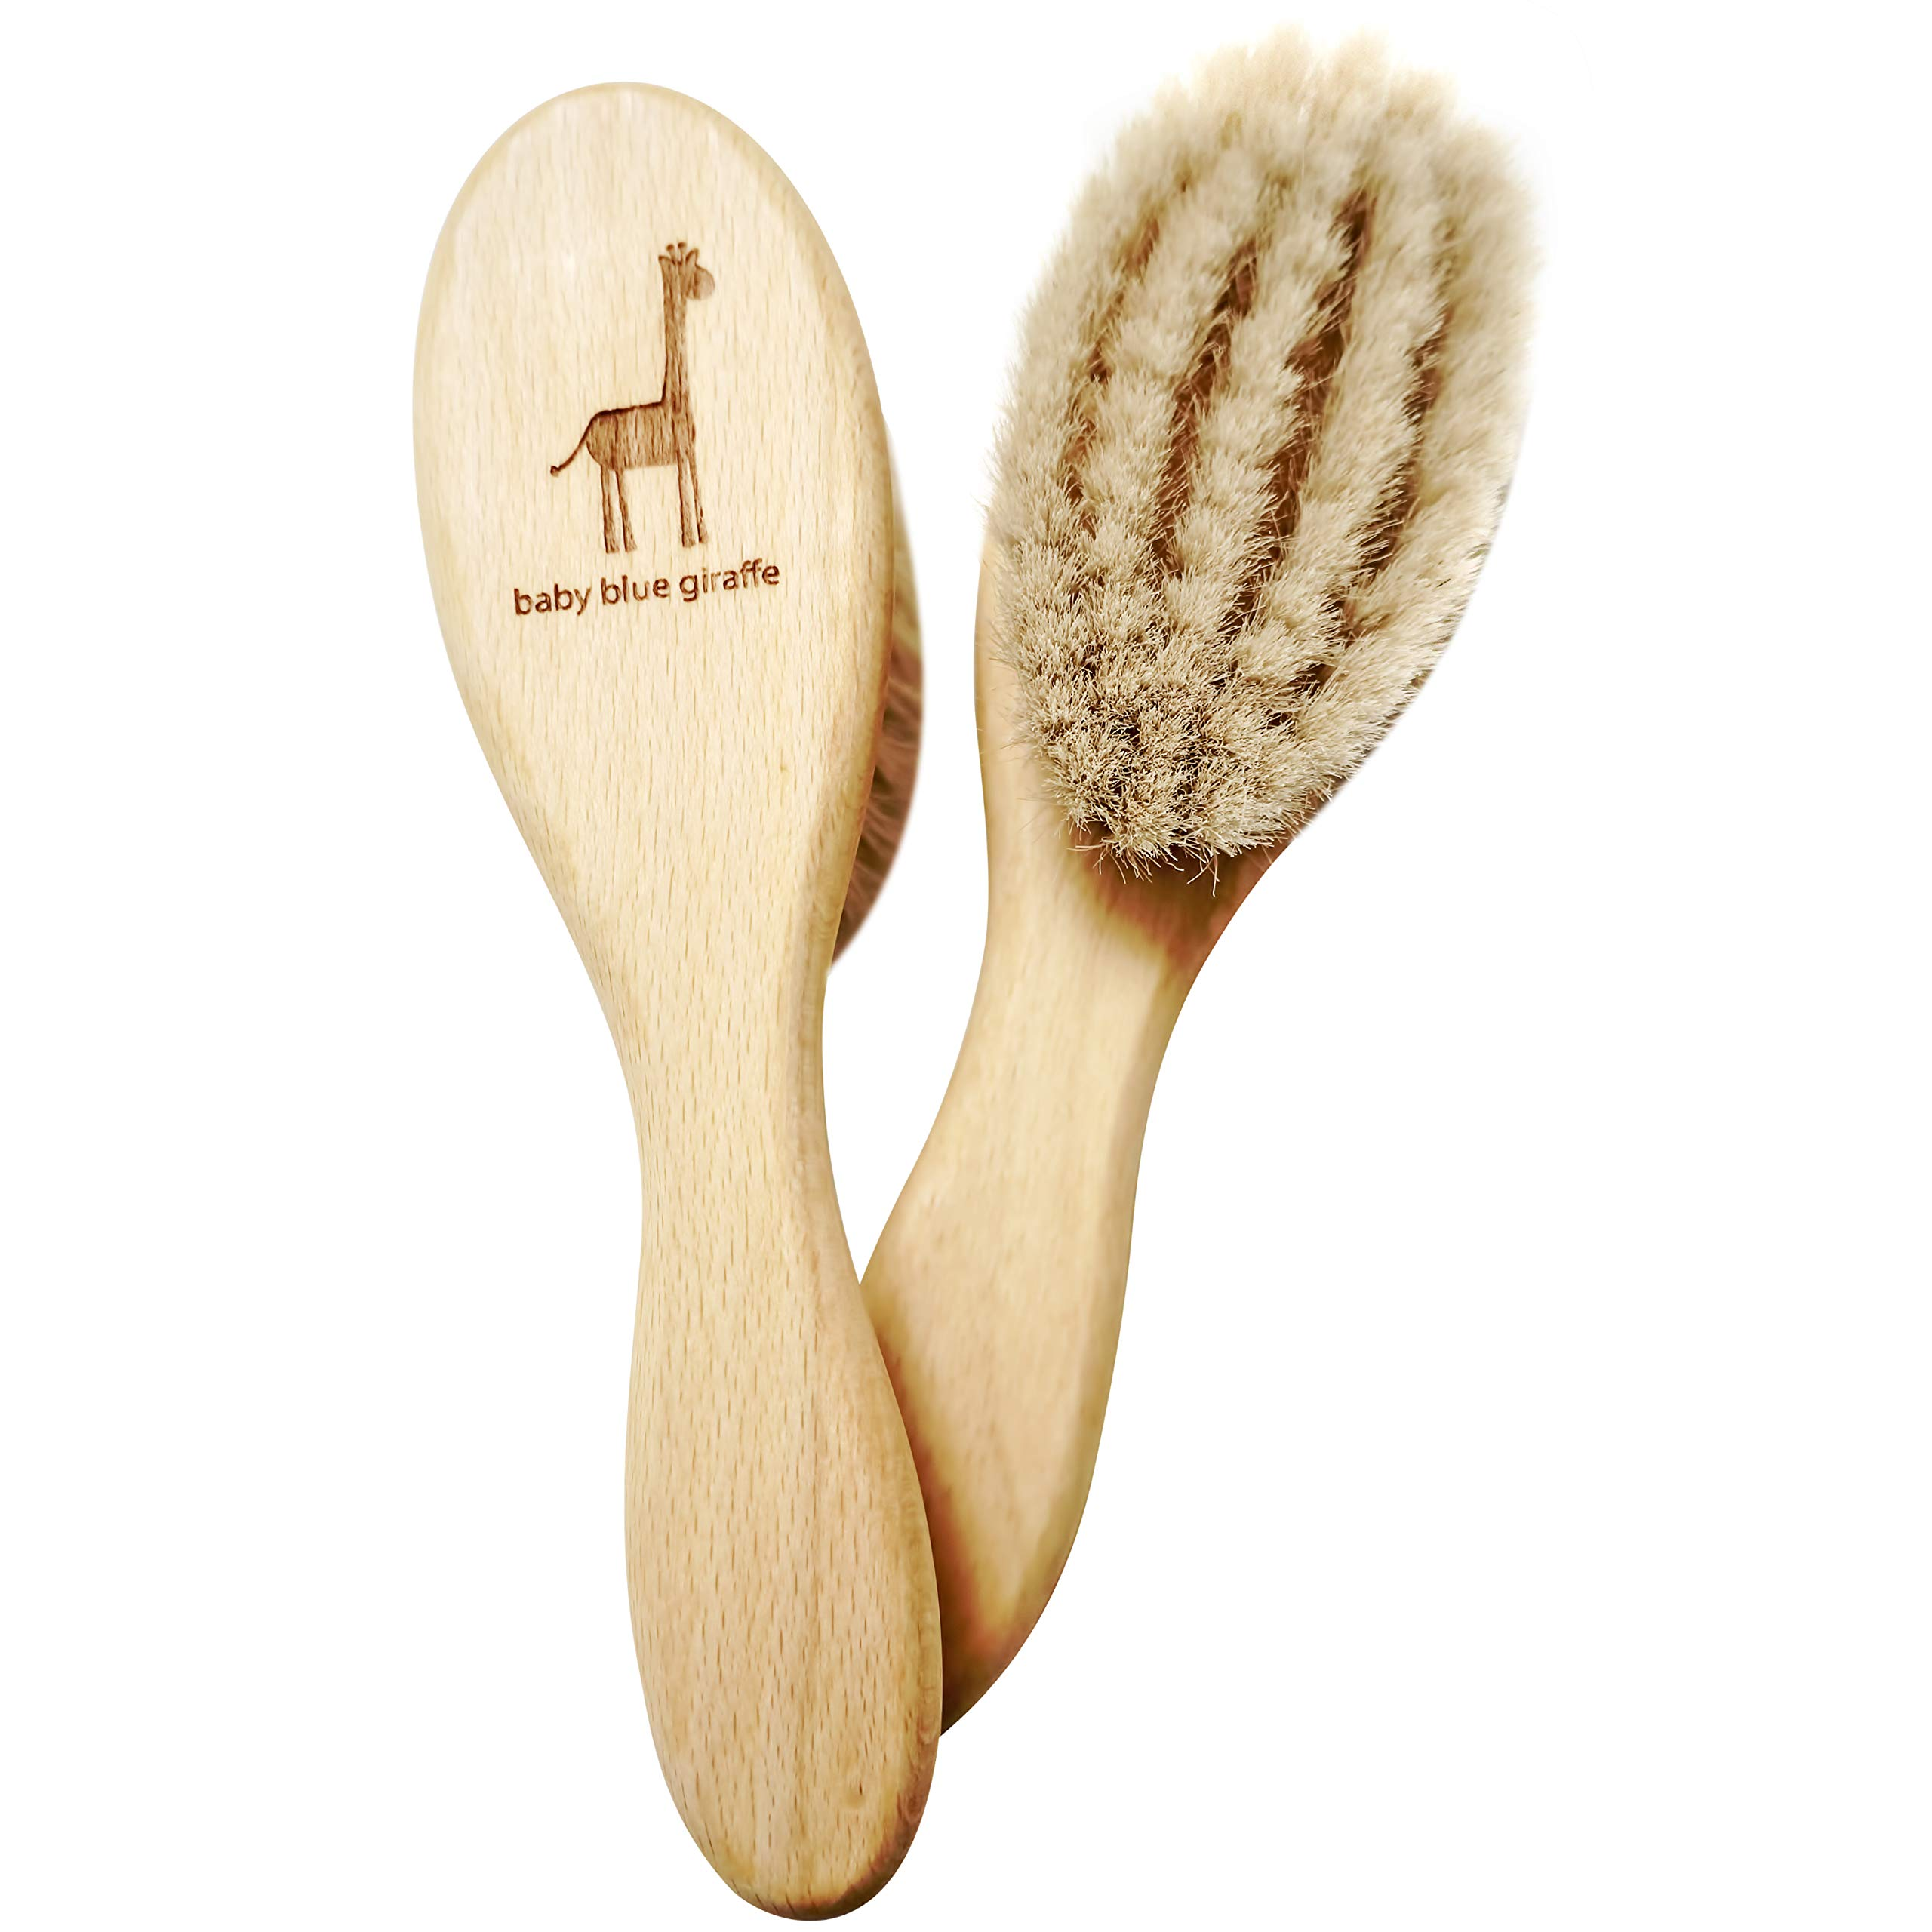 Super Soft Baby Hair Brush by baby blue giraffe: 100% Made in Germany from All Natural Beech Wood and Goat Hair by baby blue giraffe